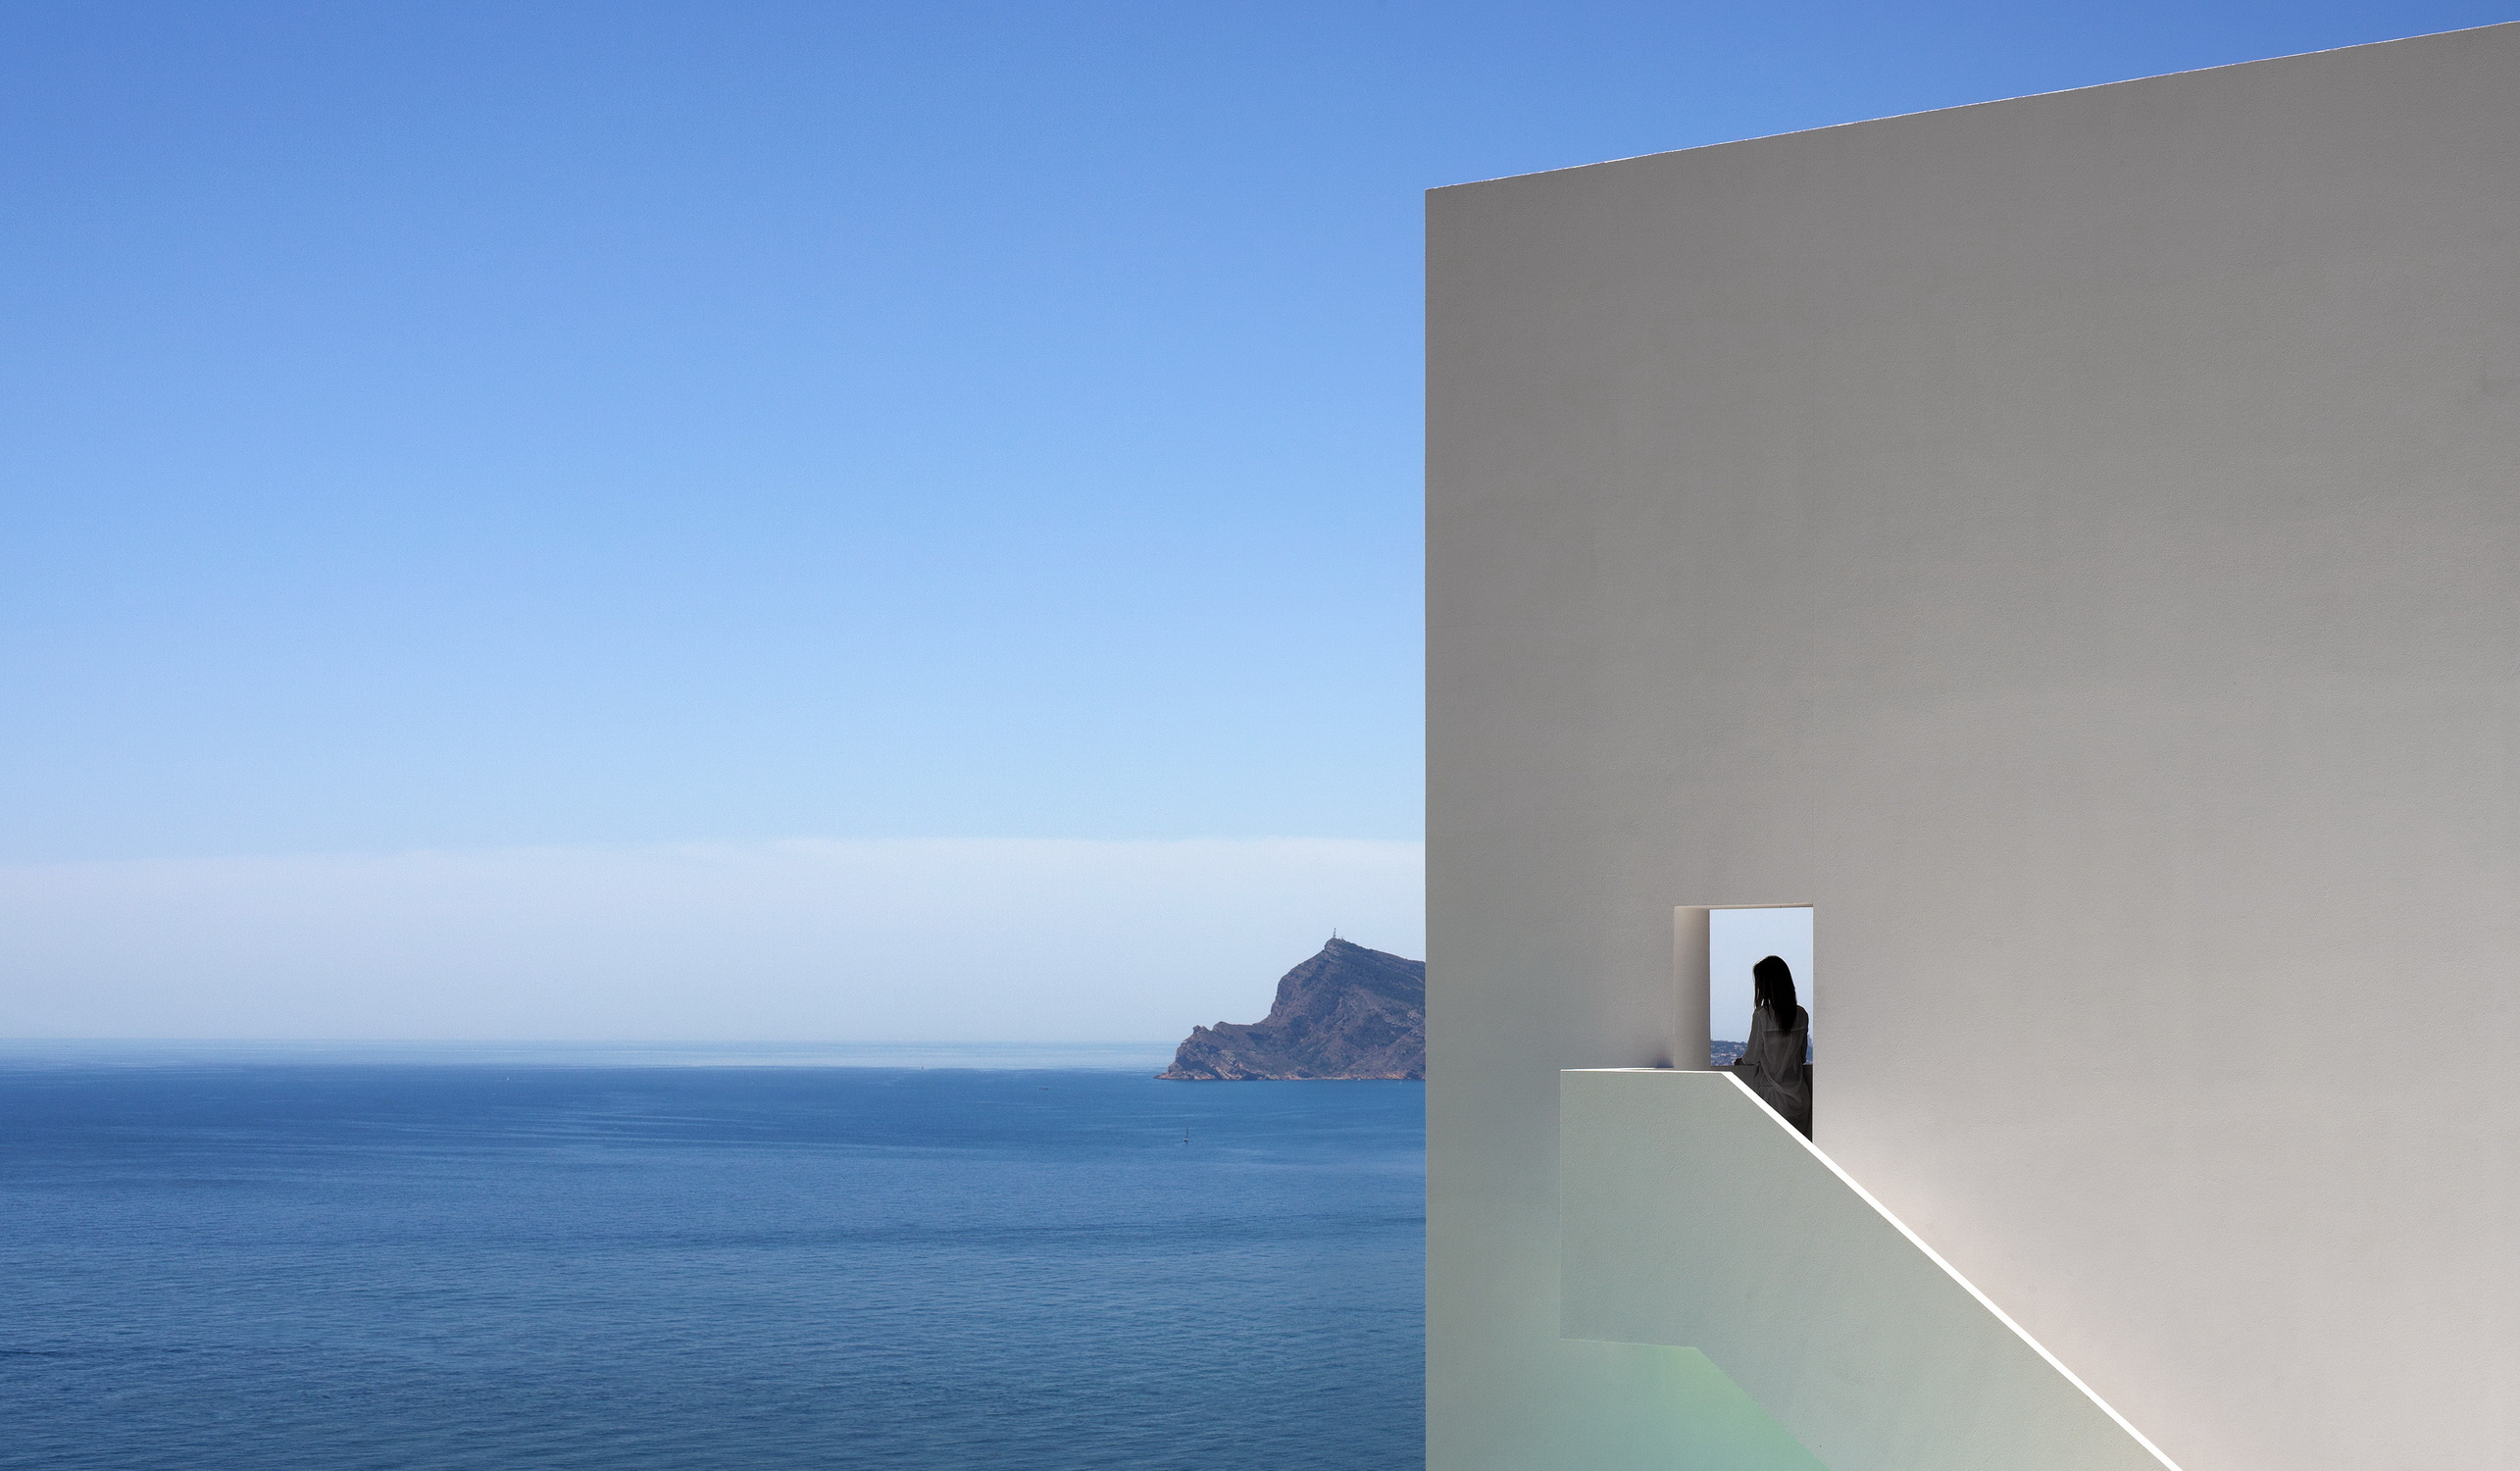 Fran silvestre arquitectos house of the cliff - Fran silvestre arquitectos ...